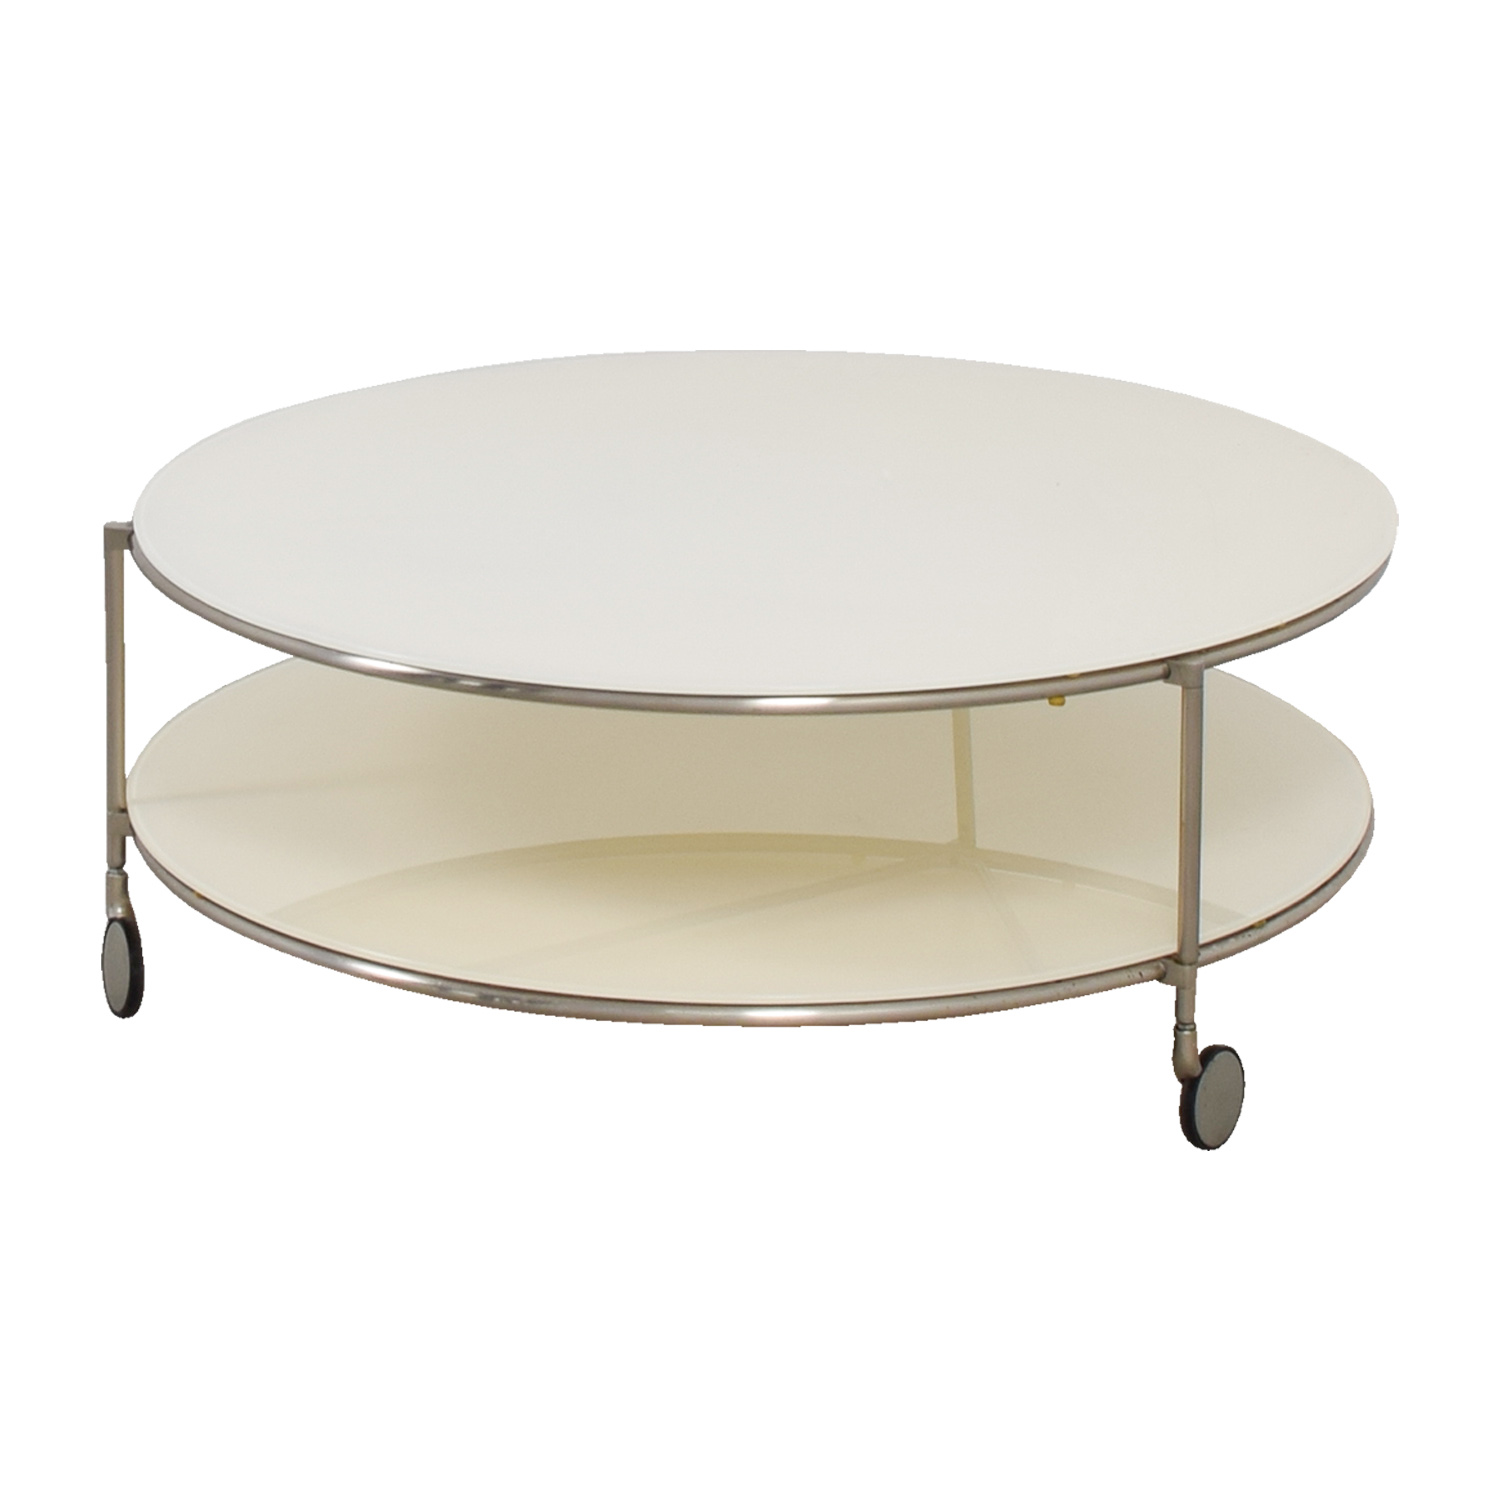 Crate & Barrel Crate & Barrel White Double Glass Cocktail Table on Castors price